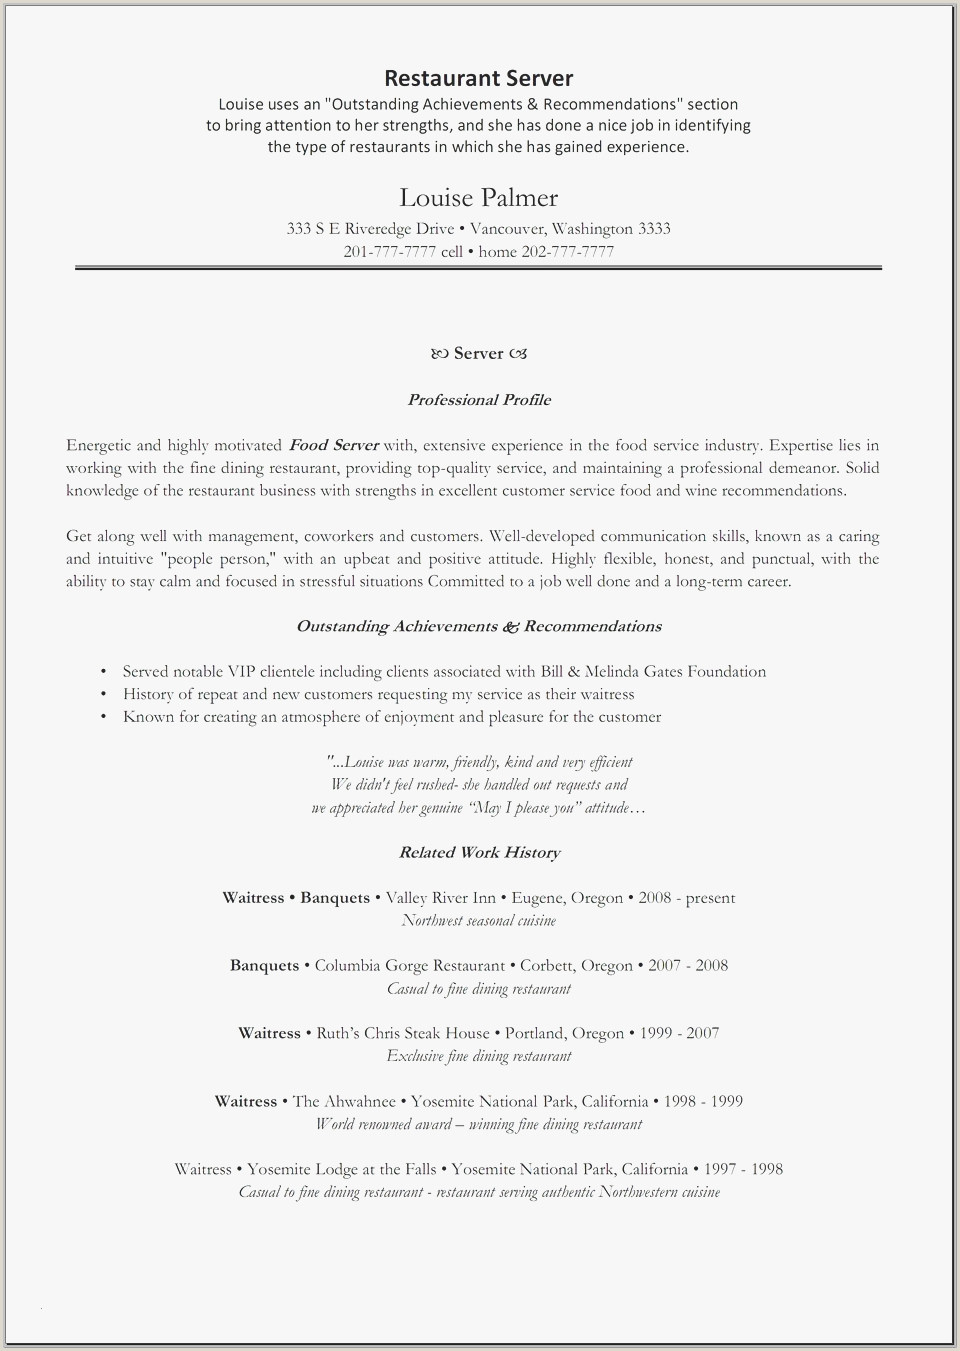 Resumes for Food Service Cover Letter for Restaurant Server Awesome New Sample Resume